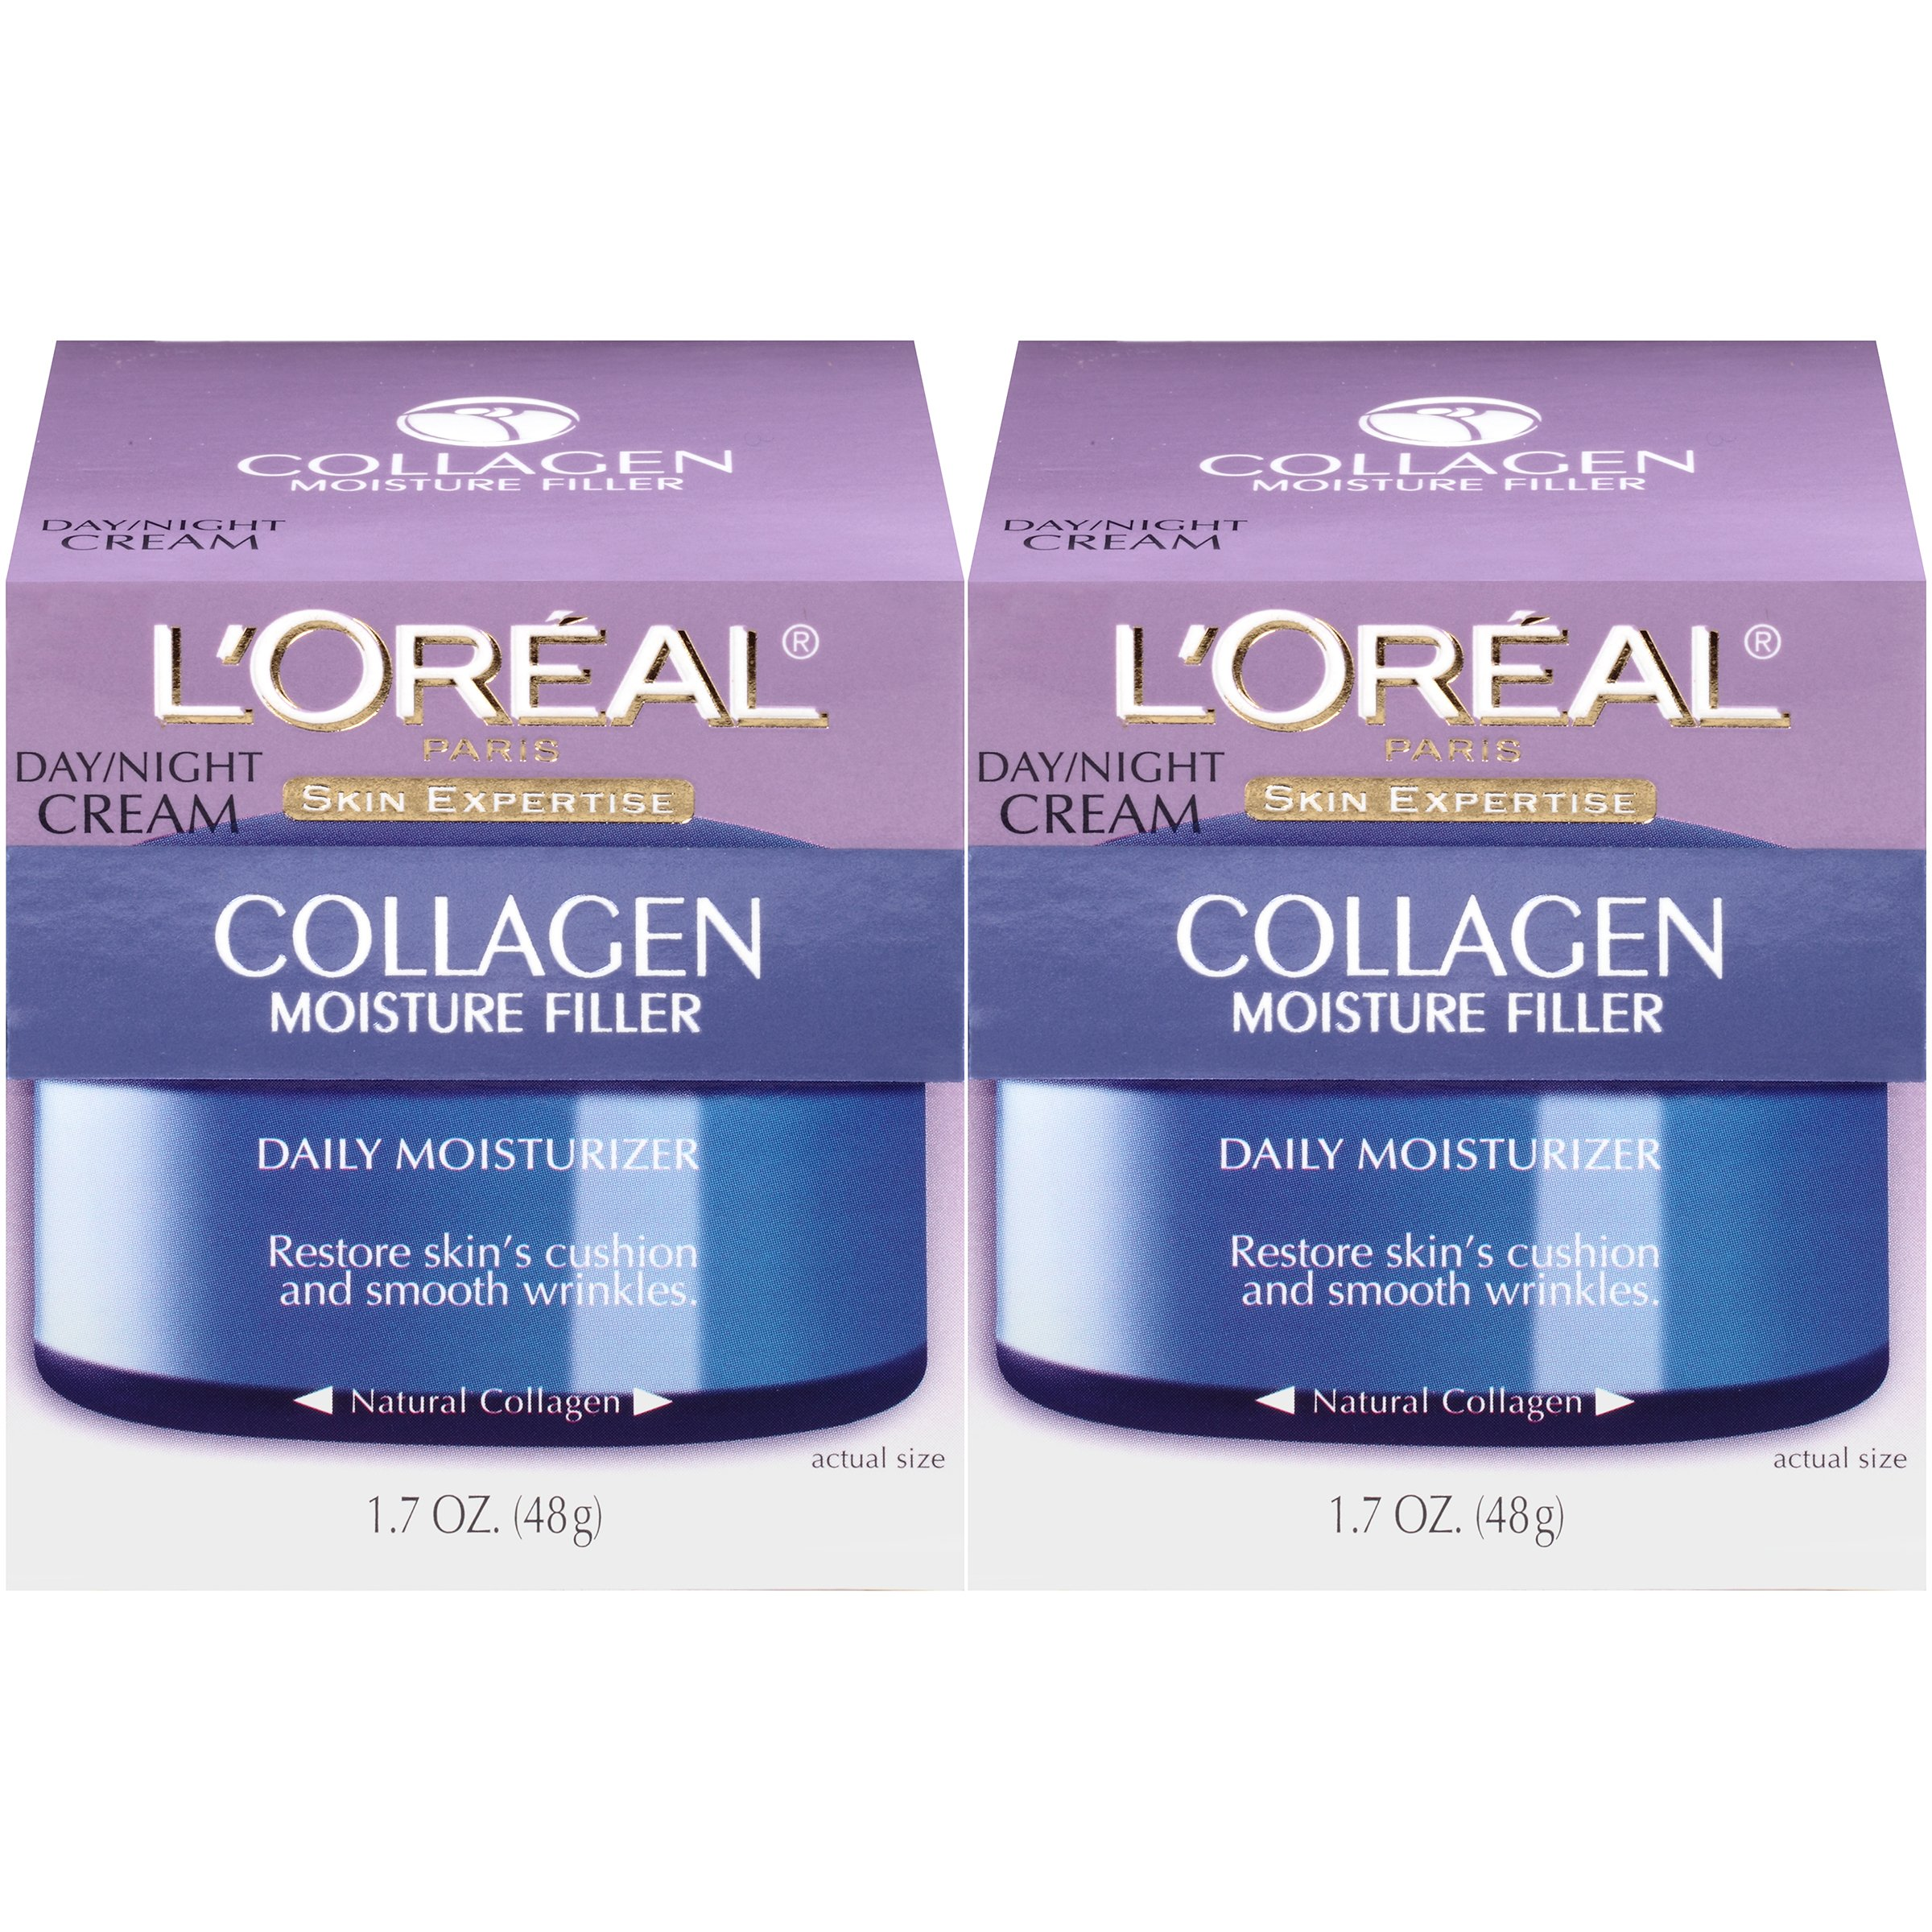 Collagen Face Moisturizer by L'Oreal Paris Skin Care I Day and Night Cream I Anti-Aging Face Cream to Smooth Wrinkles I Non-Greasy I 2 count by L'Oreal Paris